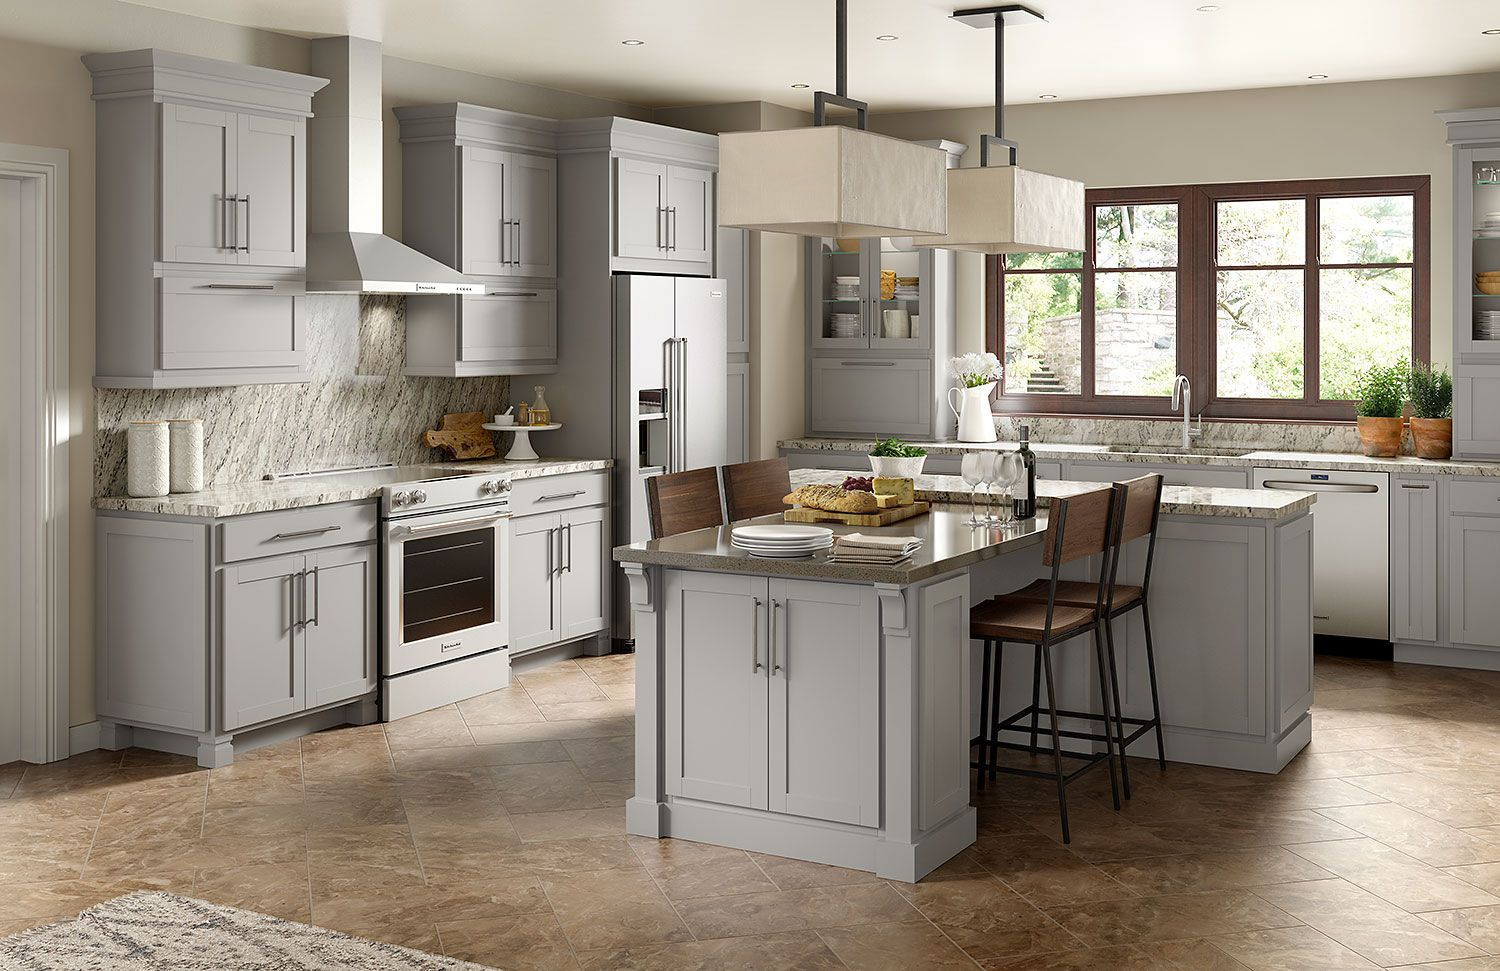 Superbe Barnett Cabinets Specs Features From Timberlake Kitchen Cabinets